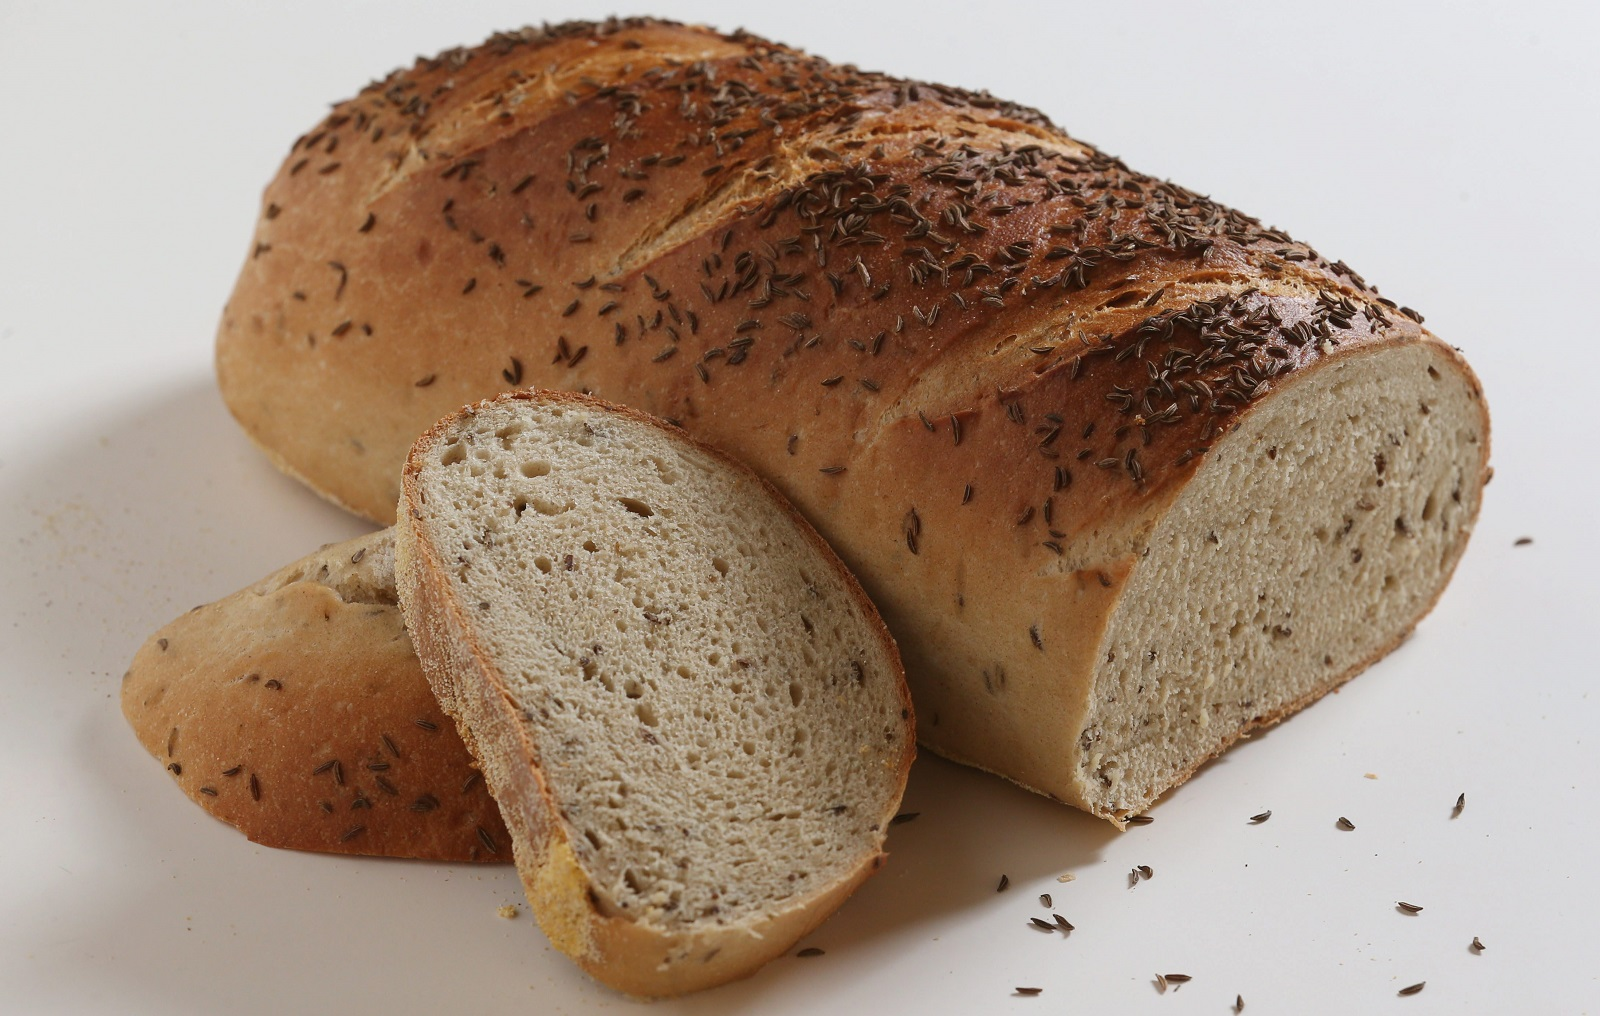 Mazurek's Bakery makes a 2-pound NY rye bread. (Sharon Cantillon/Buffalo News)